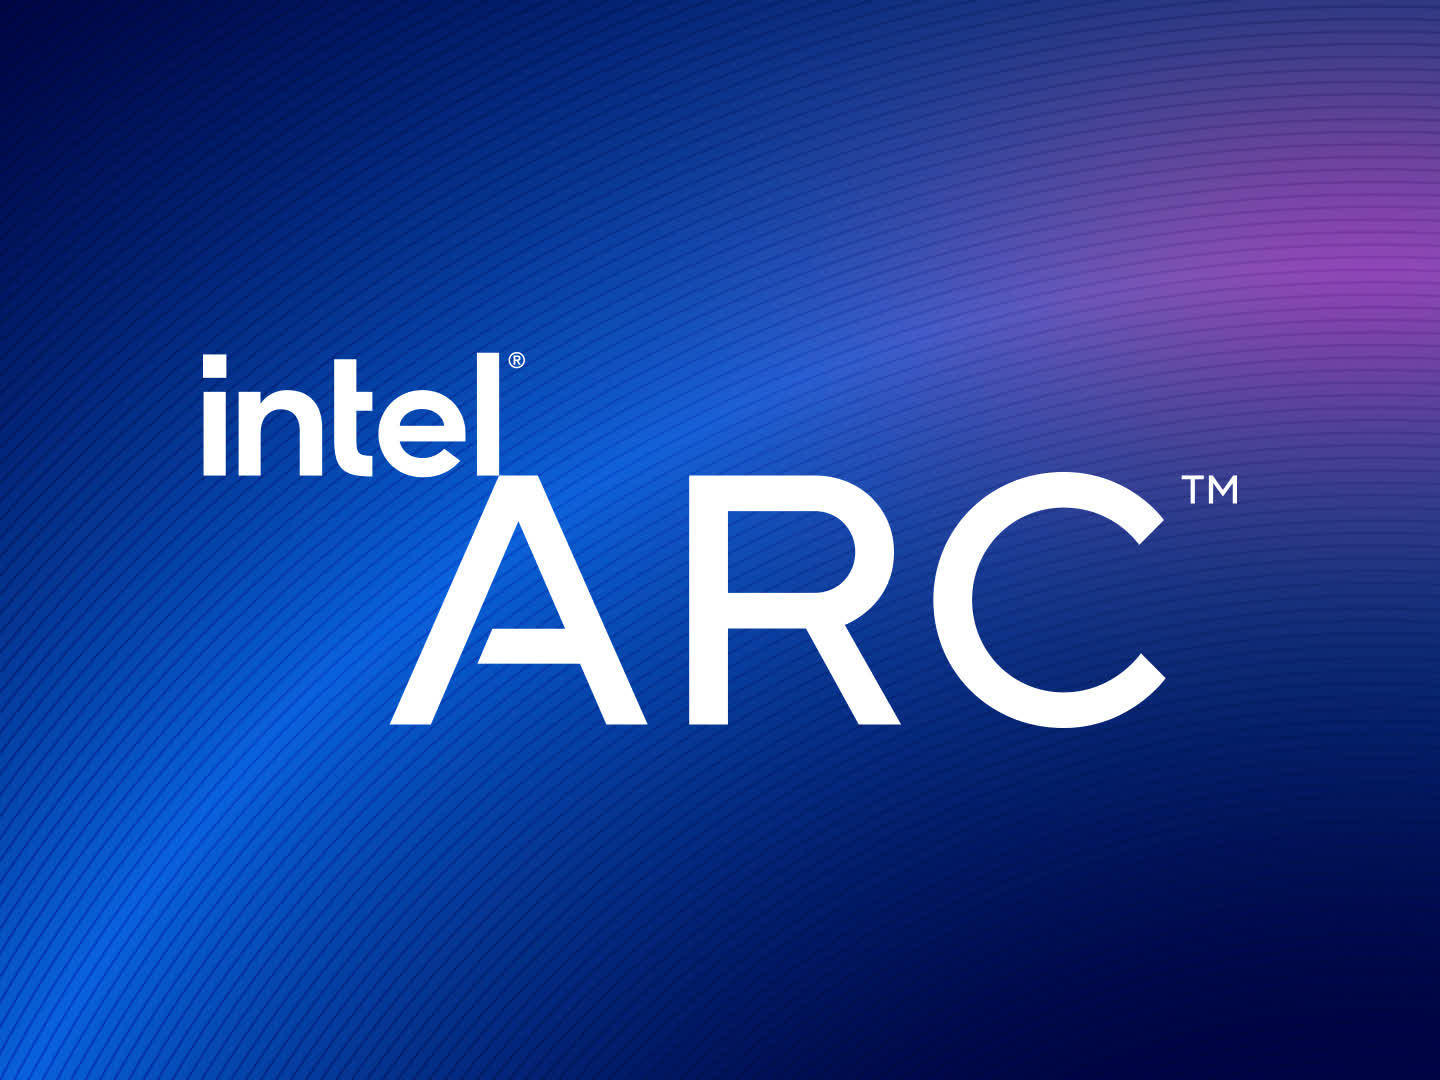 Arc is Intel's high-performance graphics brand, to take on GeForce and Radeon GPUs